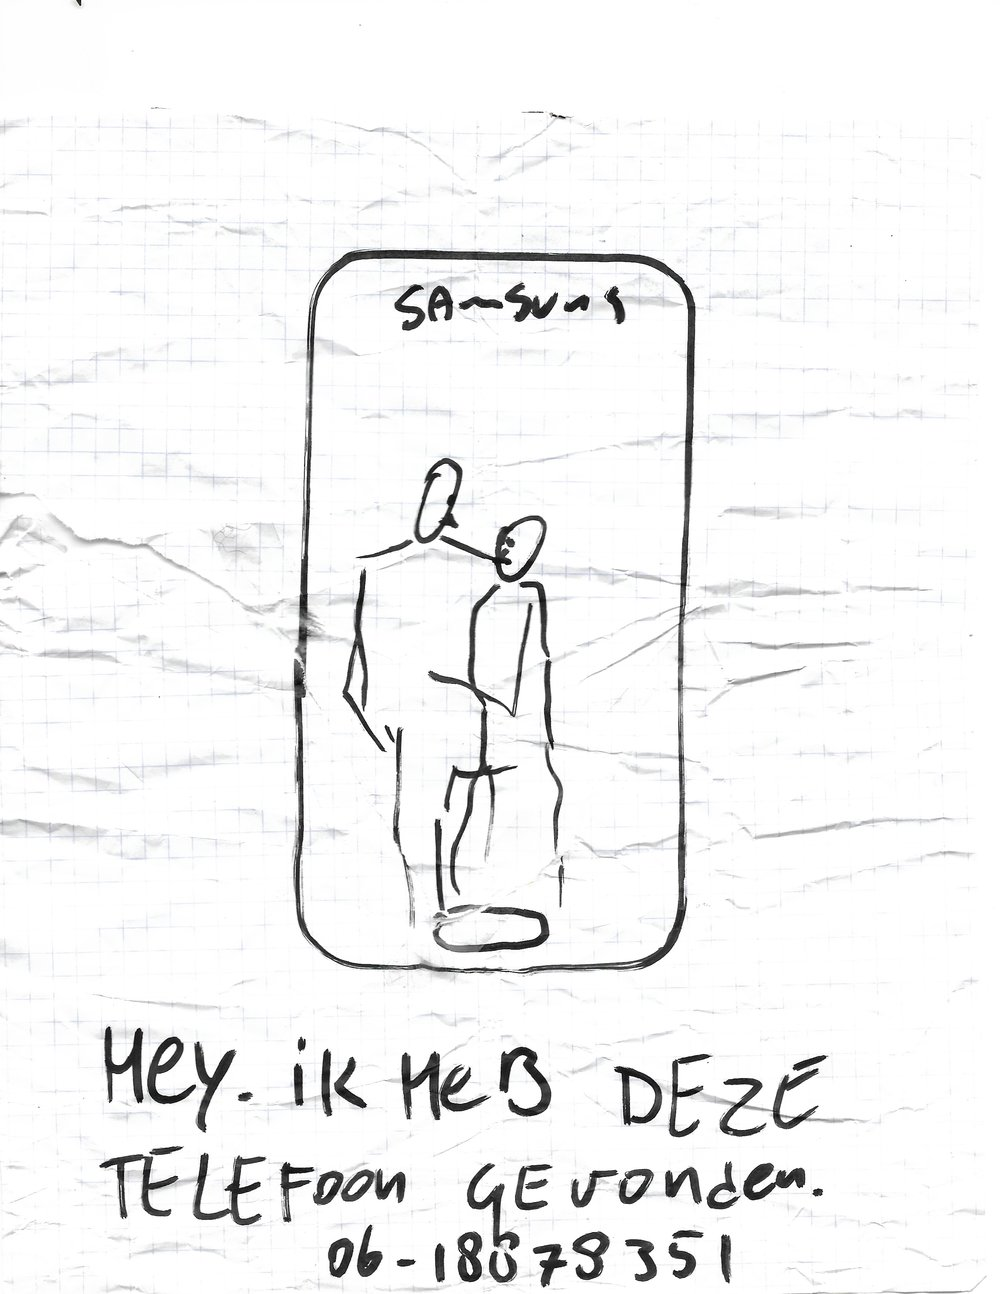 """LOST SAMSUNG (06.2018 - Rotterdam, NL)  found lost sign -  translation:  """"I have lost this phone. Find it telephone - 06-18878351"""".  8.5 in x 11 in"""